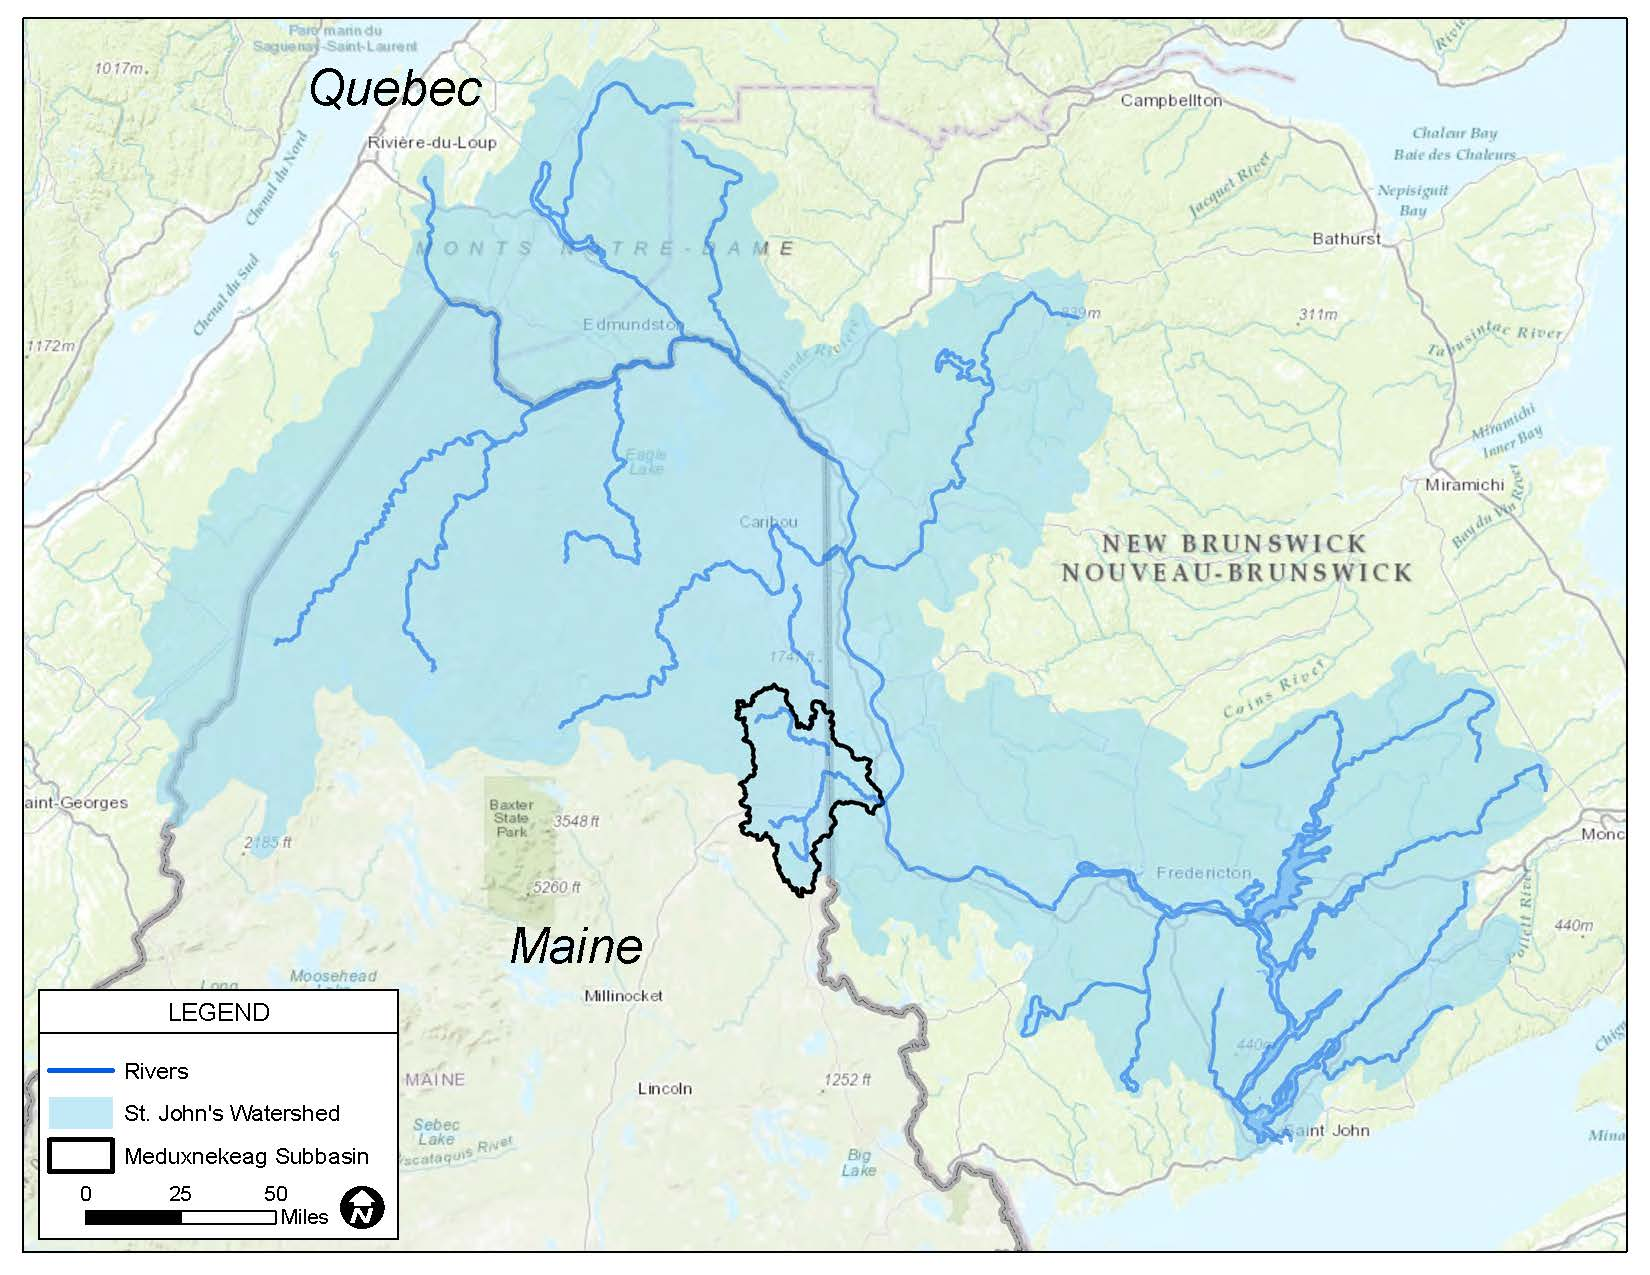 Wolastoq Watershed essment on northeast us rivers map, paris rivers map, atlanta rivers map, minnesota rivers map, washinton rivers map, maine bordering states, columbia rivers map, madison rivers map, rhode island rivers map, maine rivers and streams, maryland rivers map, washington rivers map, ontario rivers map, europe rivers map, allagash river map, florida rivers map, michigan rivers map, new york rivers map, vermont rivers map, midwest region rivers map,